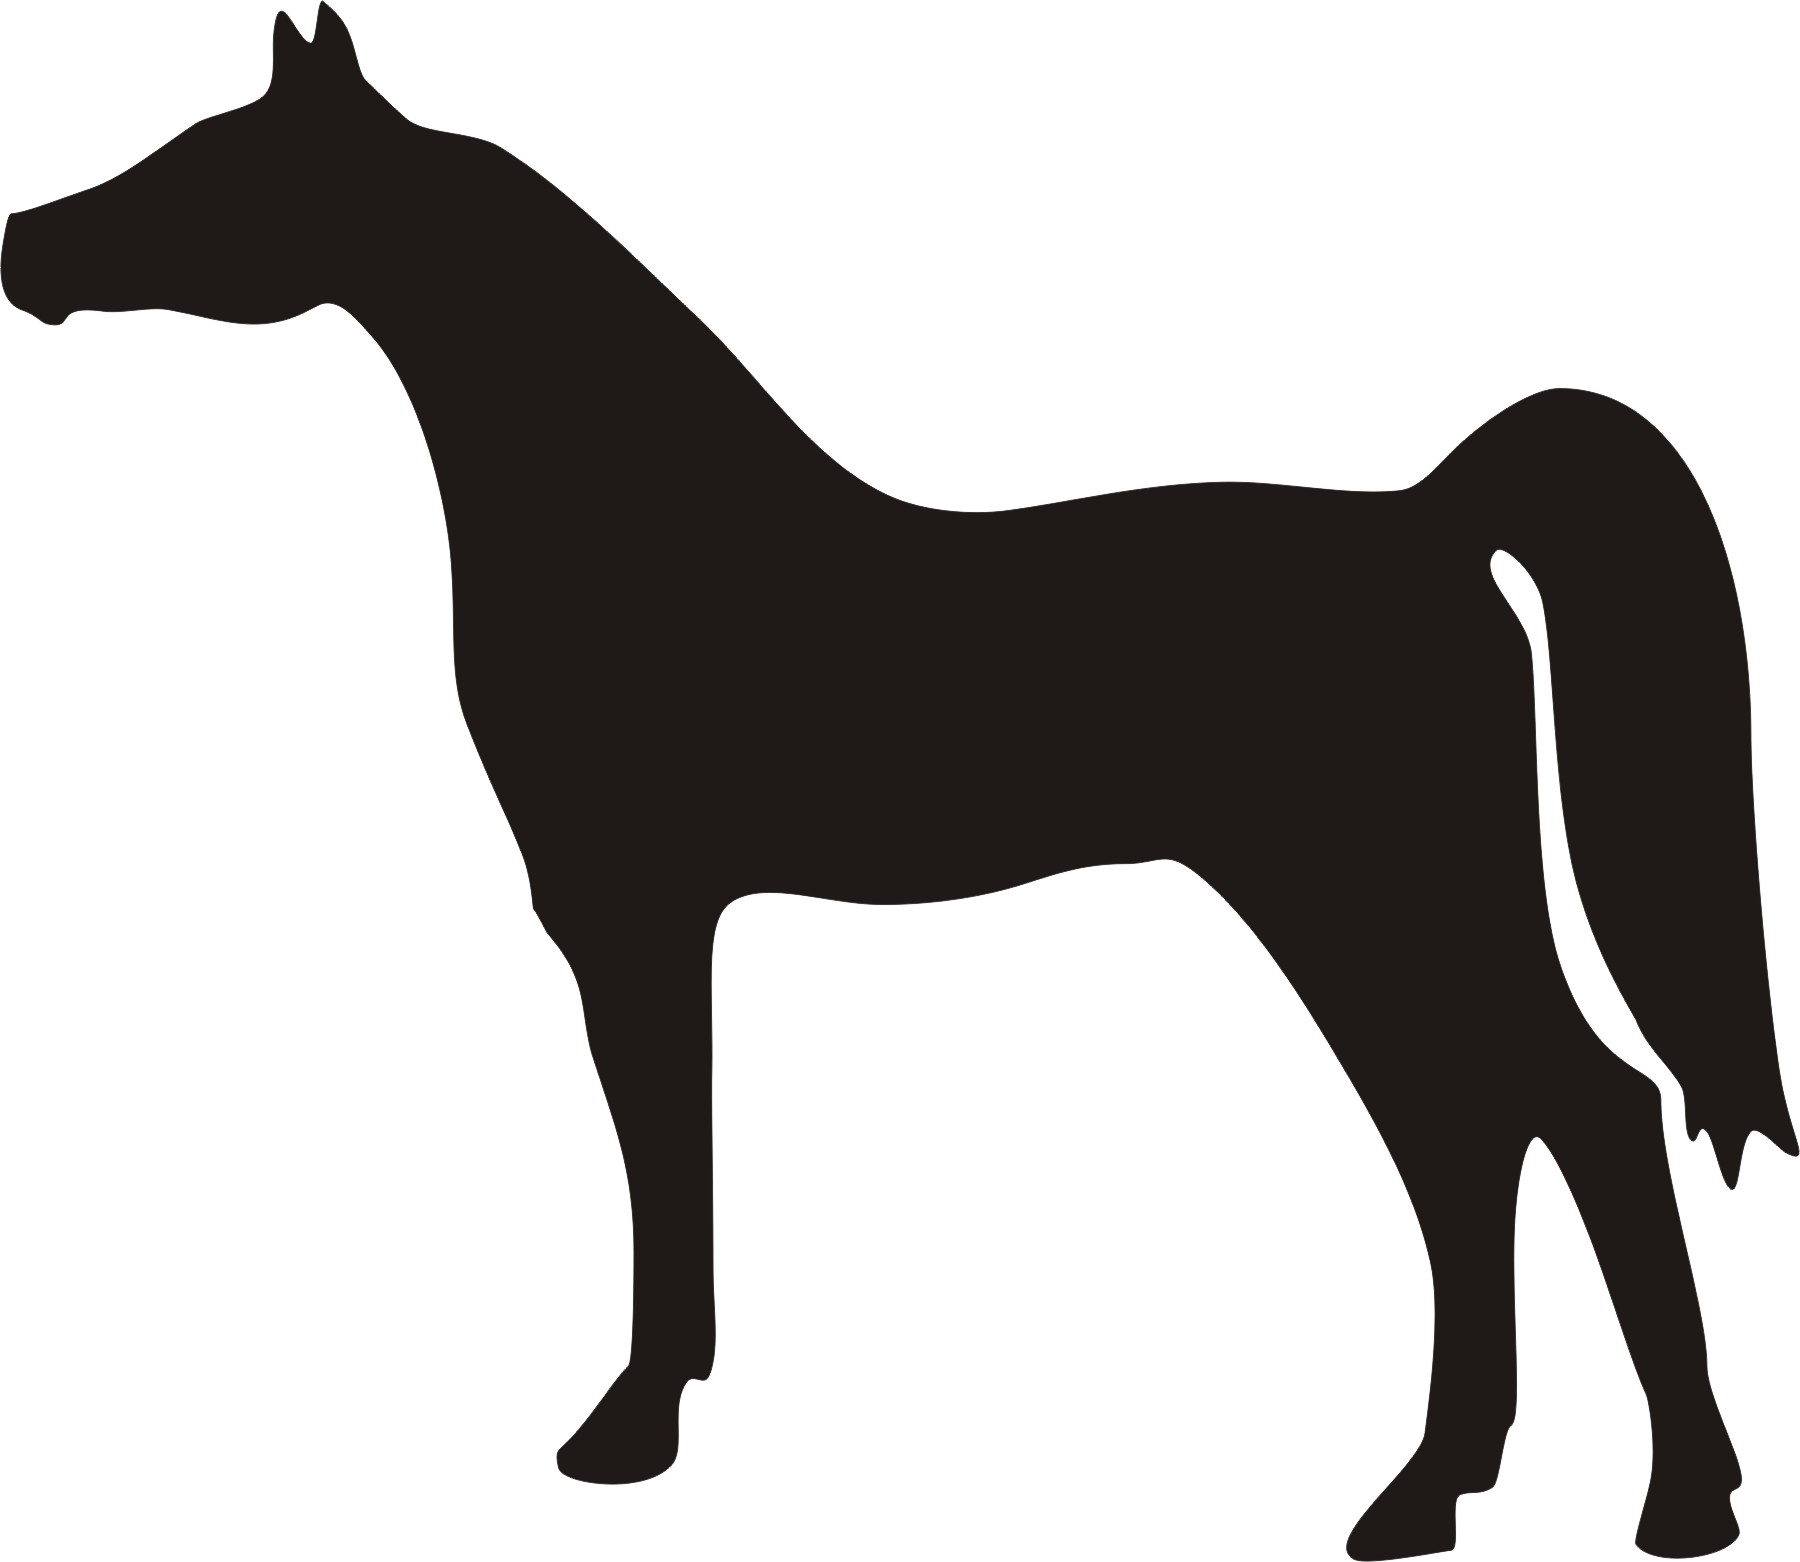 20 Horse Silhouette Free Cliparts That You Can Download To You